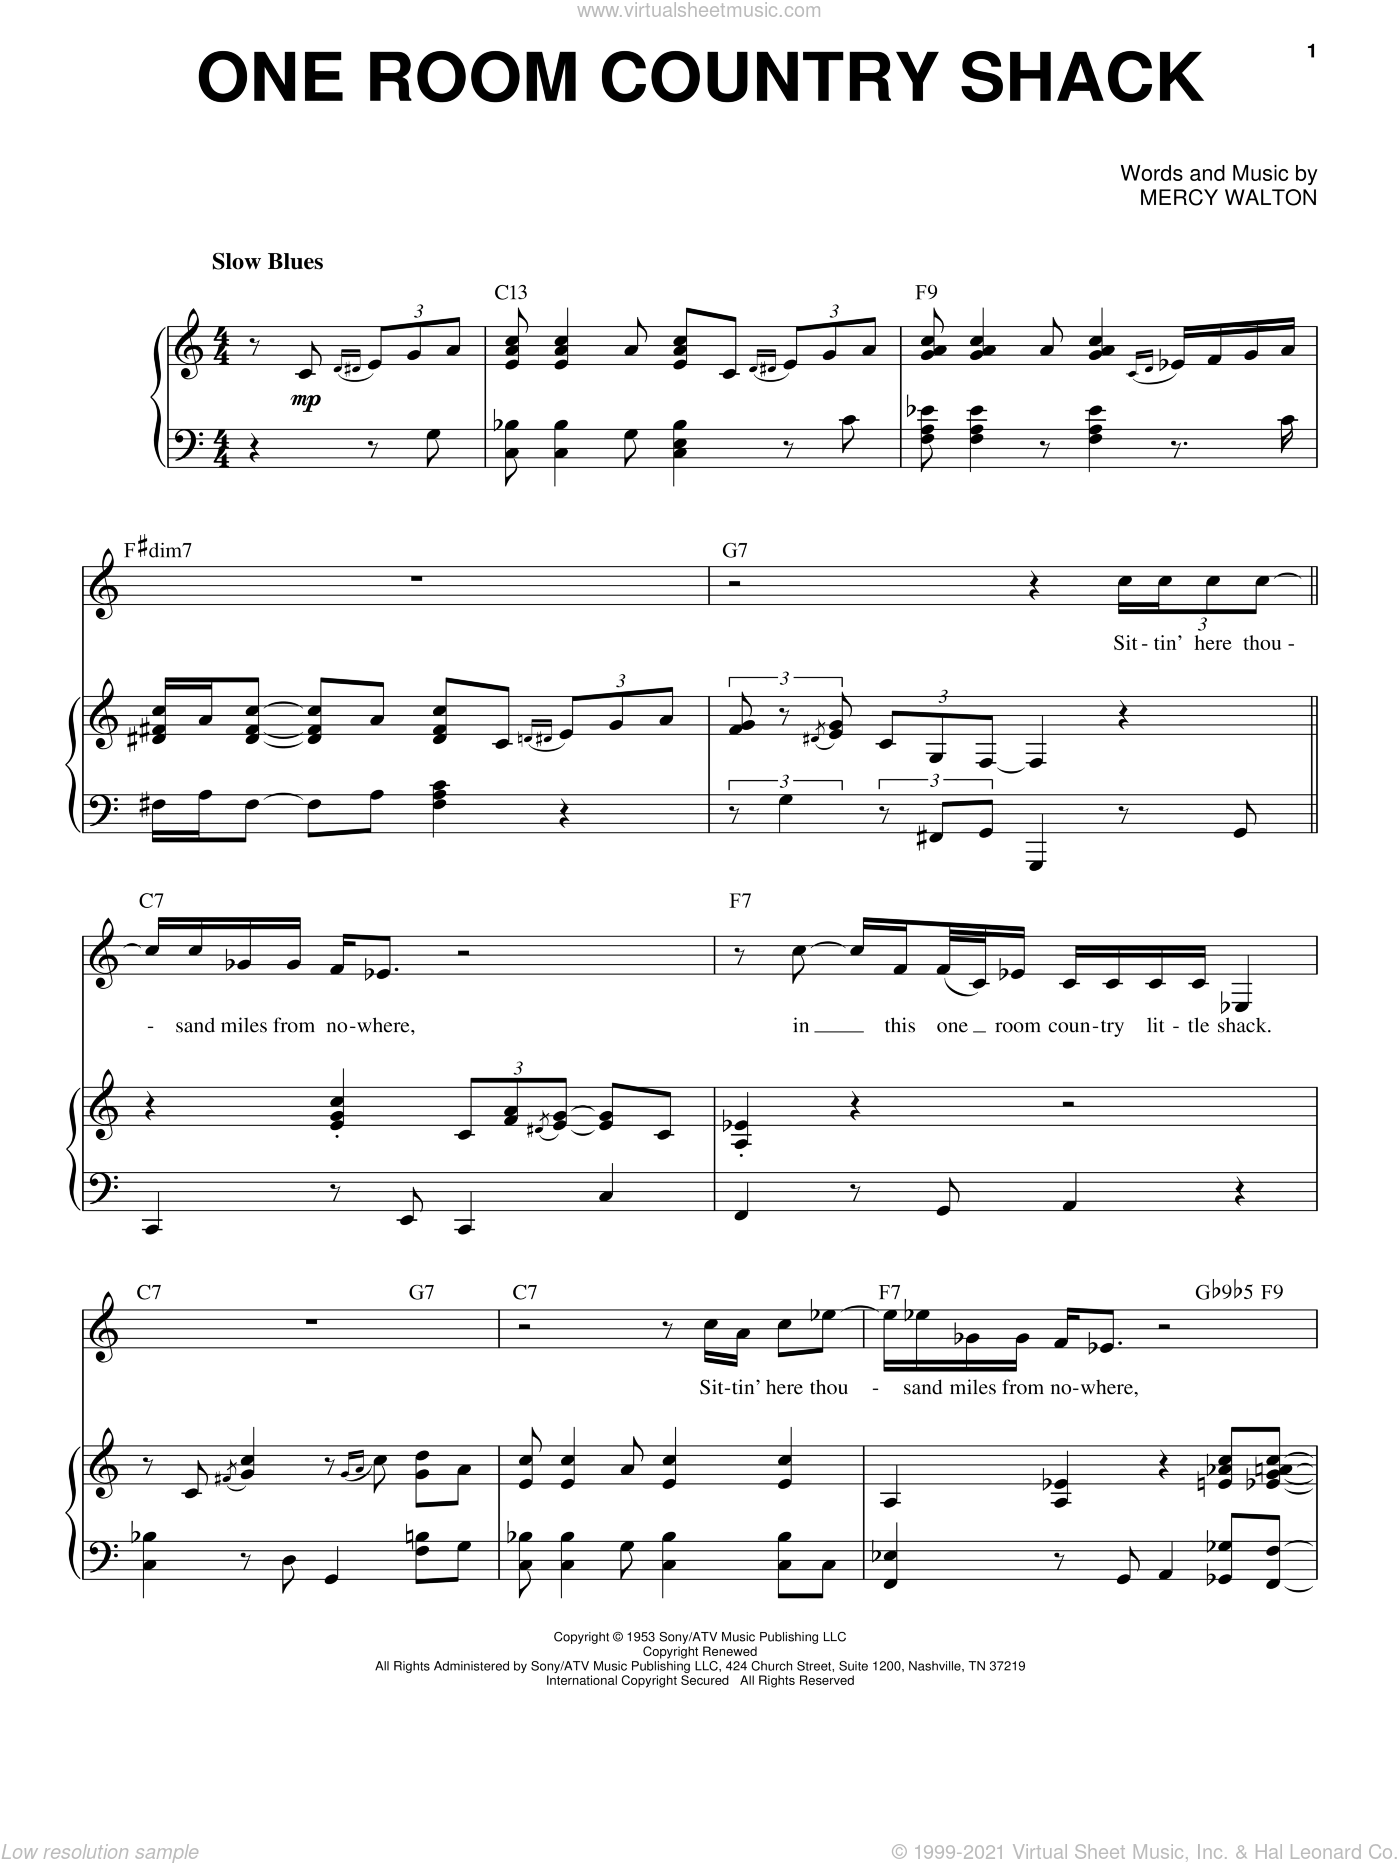 One Room Country Shack sheet music for voice and piano by Mose Allison. Score Image Preview.